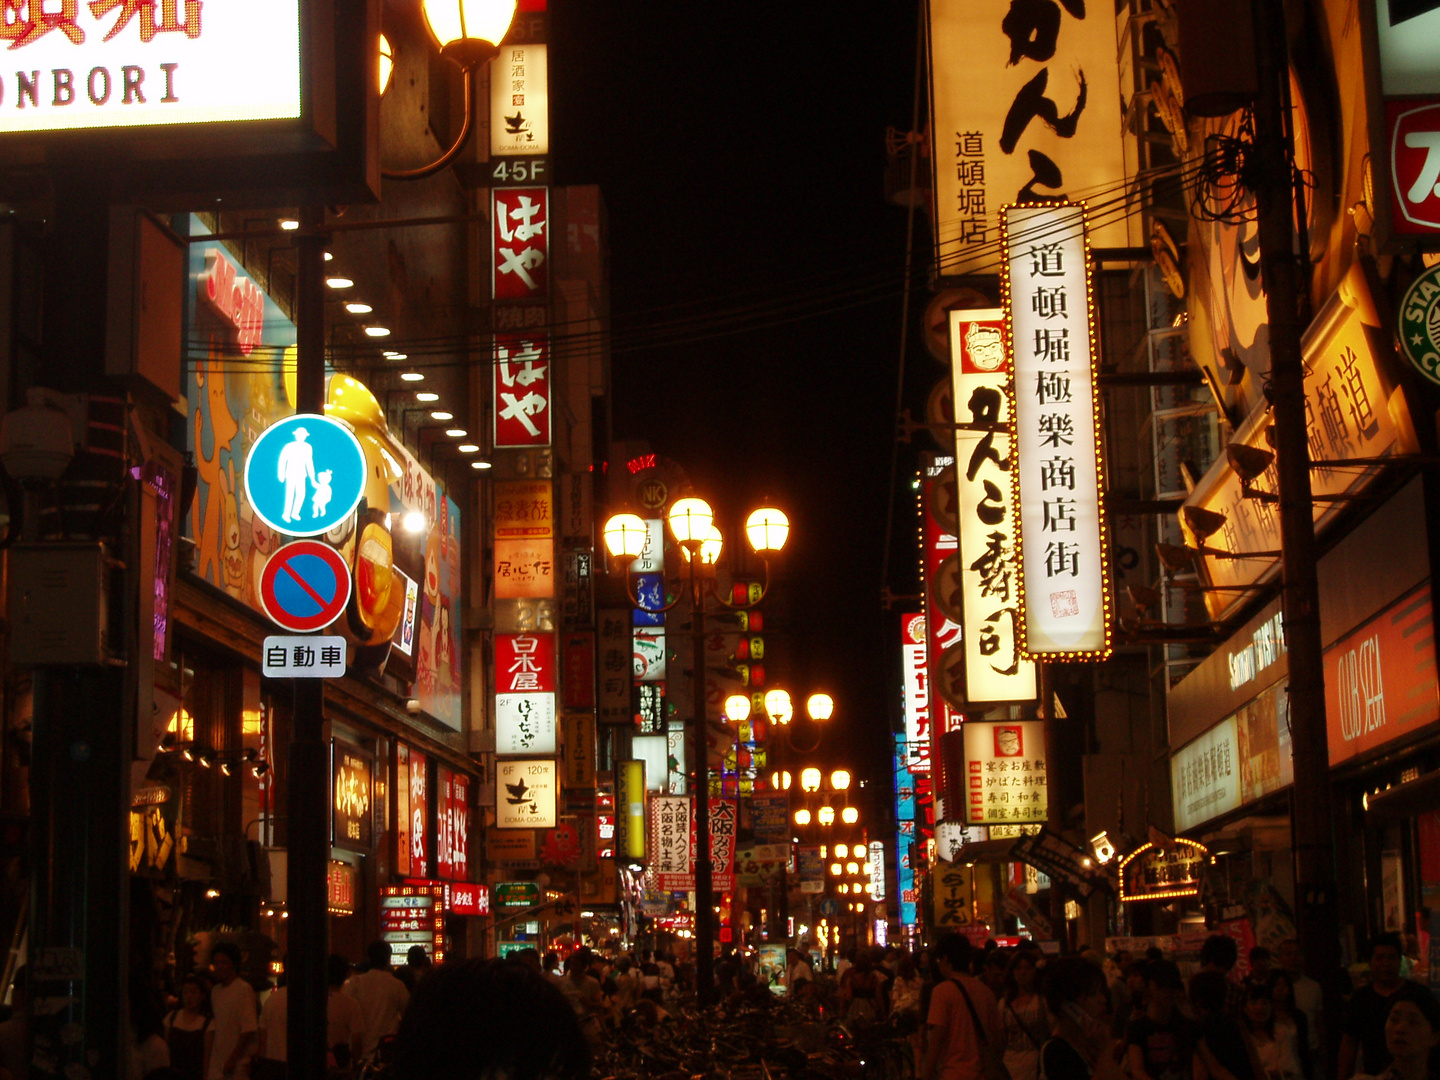 Another Night in Osaka